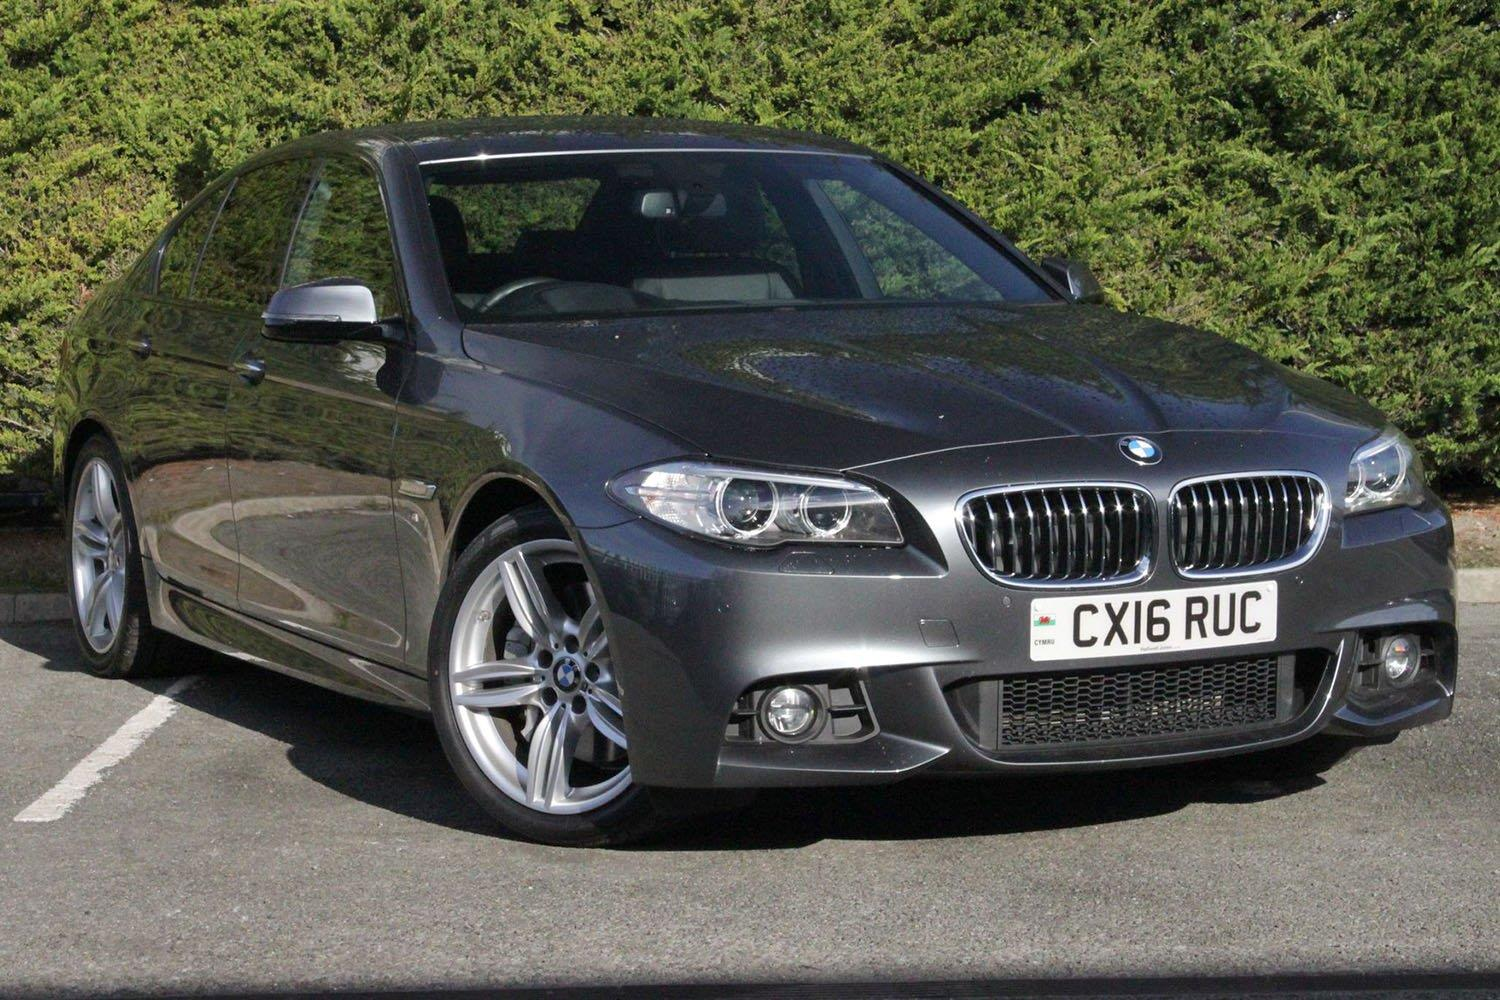 BMW 5 Series Saloon CX16RUC - Image 9